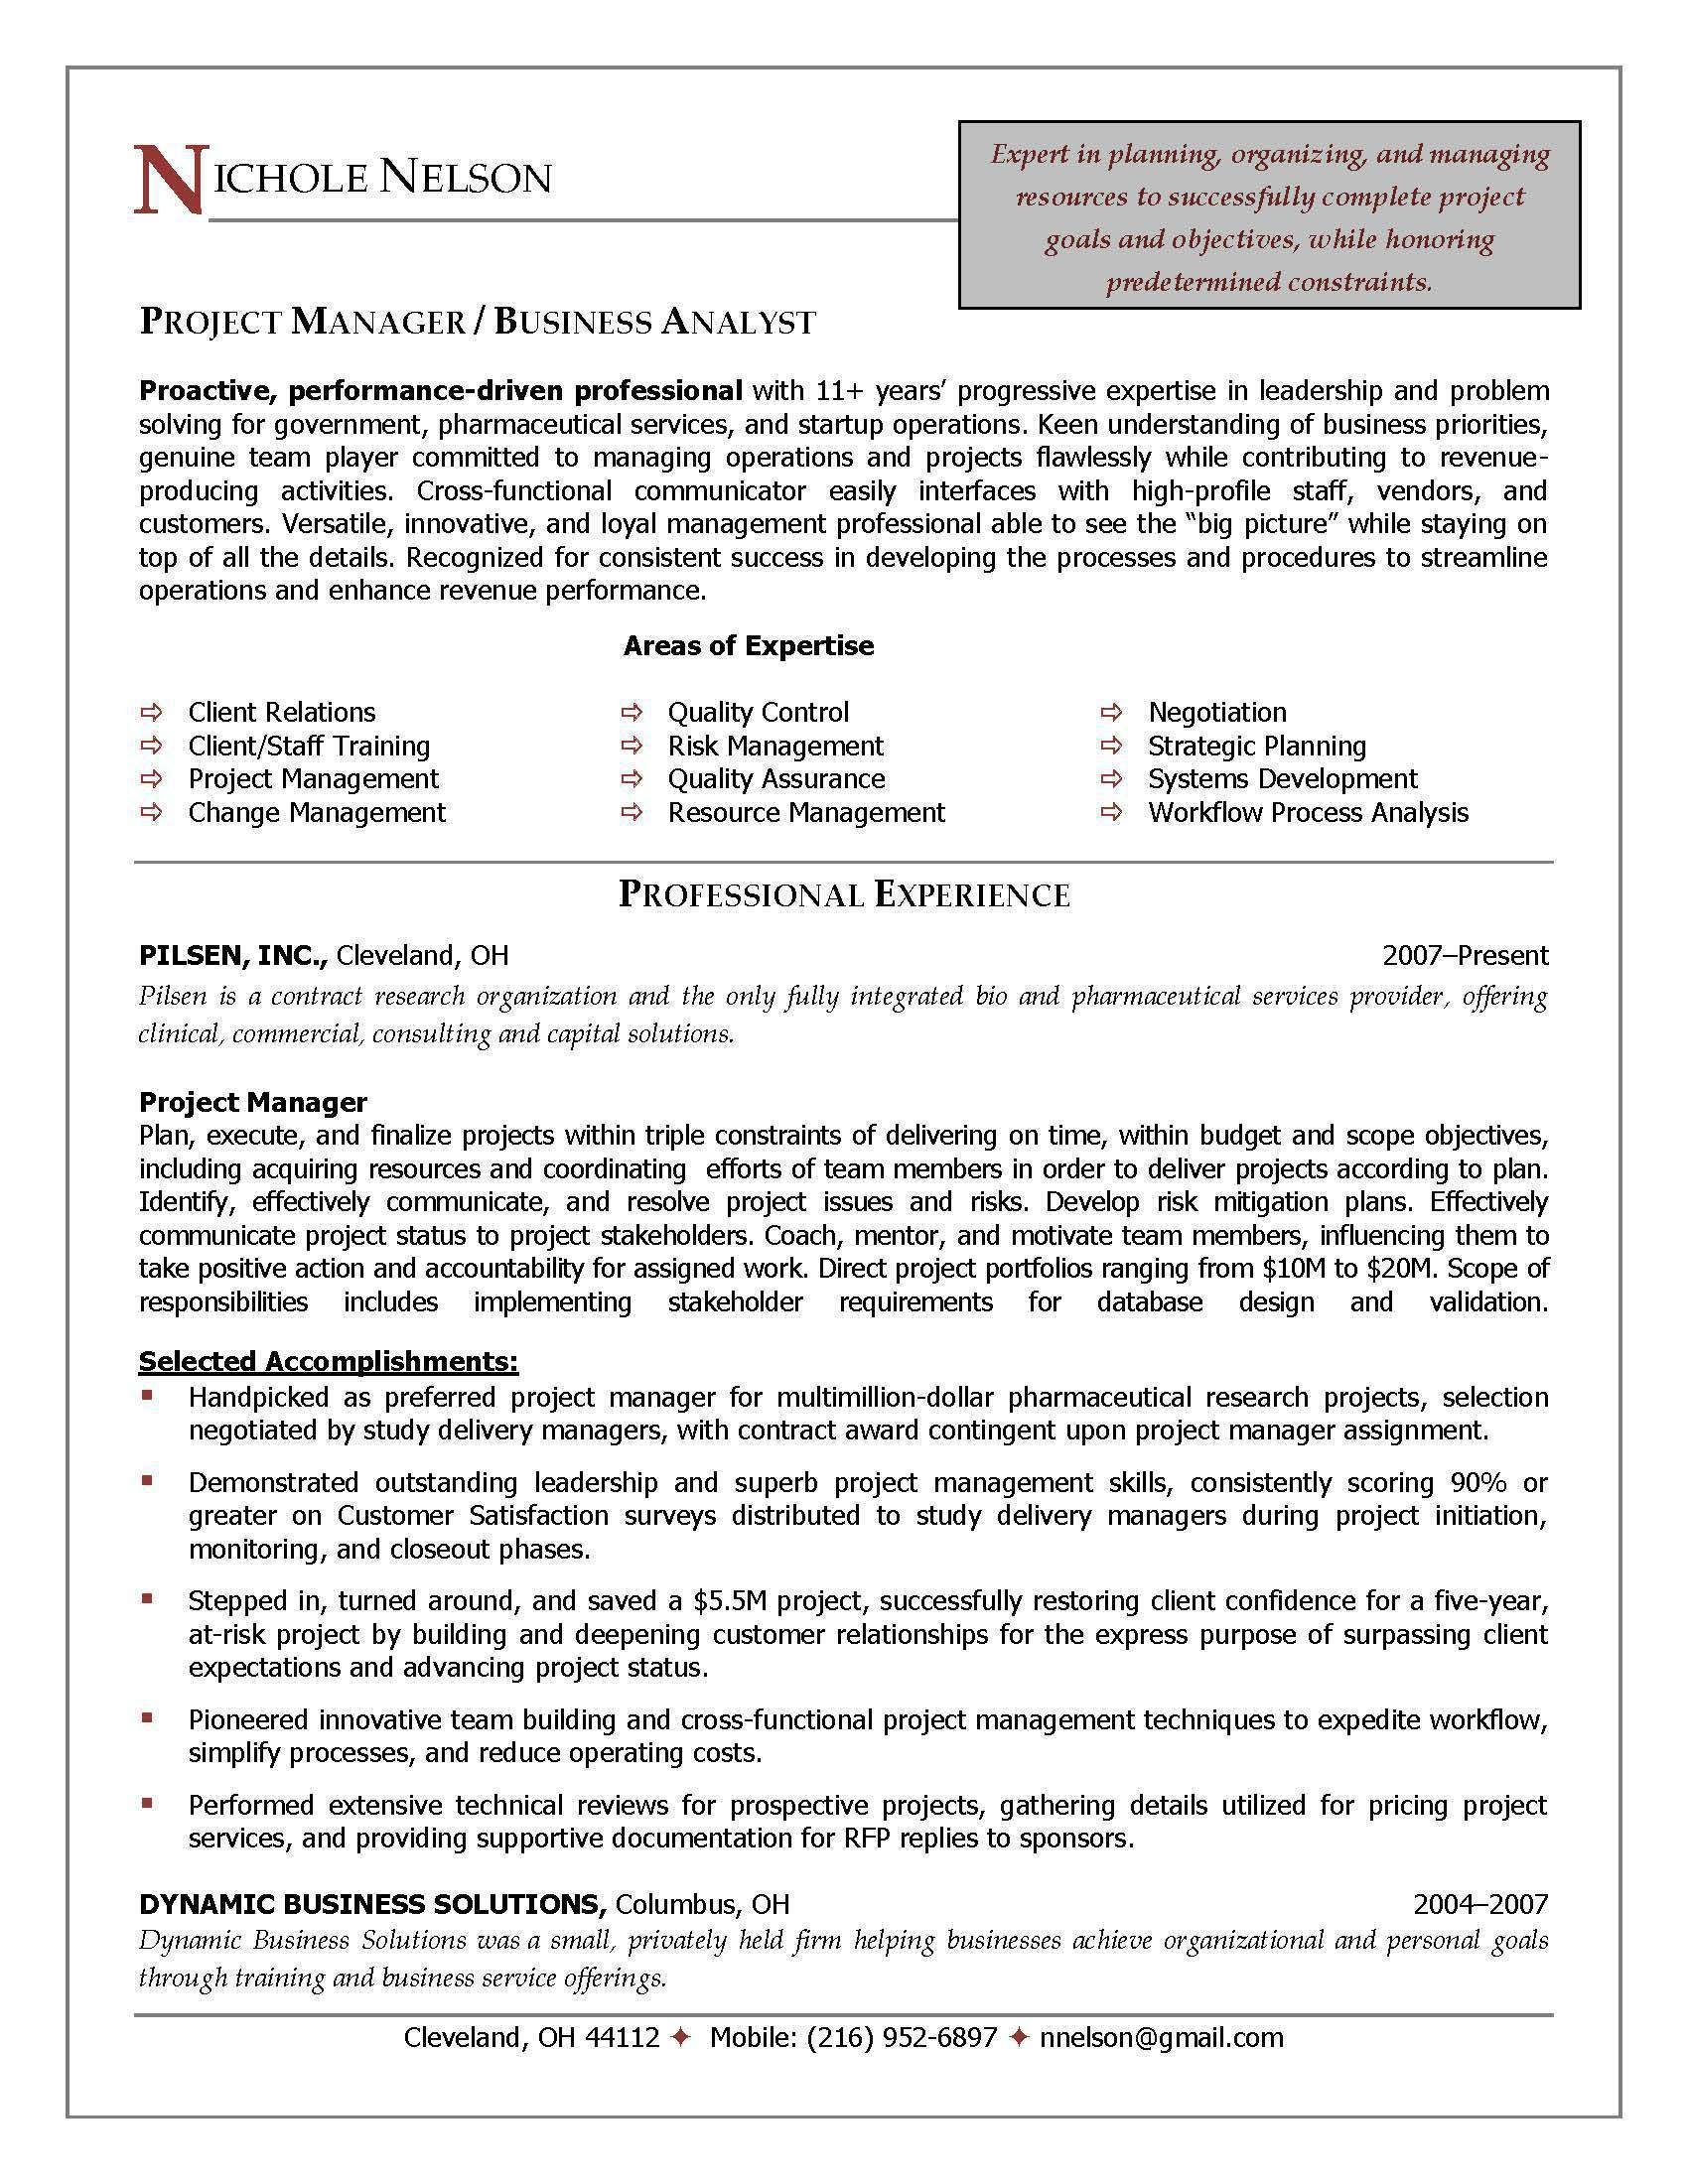 Resume Professional Summary Examples Best Inspirationprintablelogisticsresumeexampleslogisticsresume